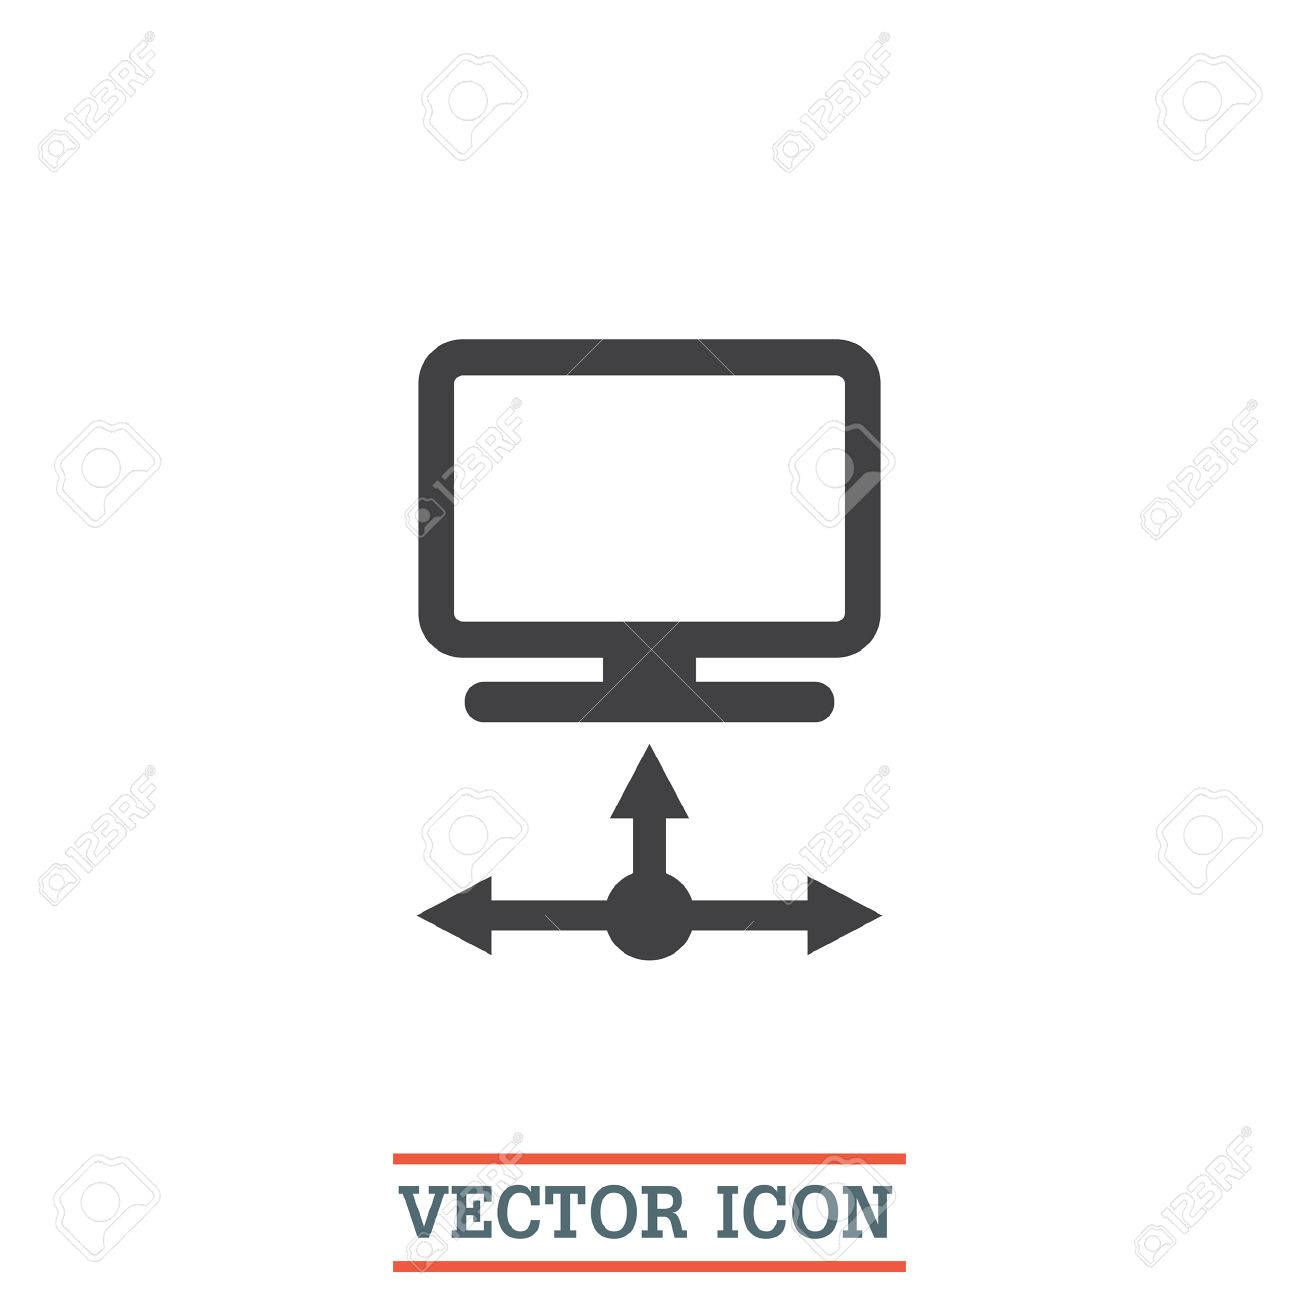 extreme networks visio stencils organizational structures examples 59231617 data transfer vector icon computer network sign lan - Computer Visio